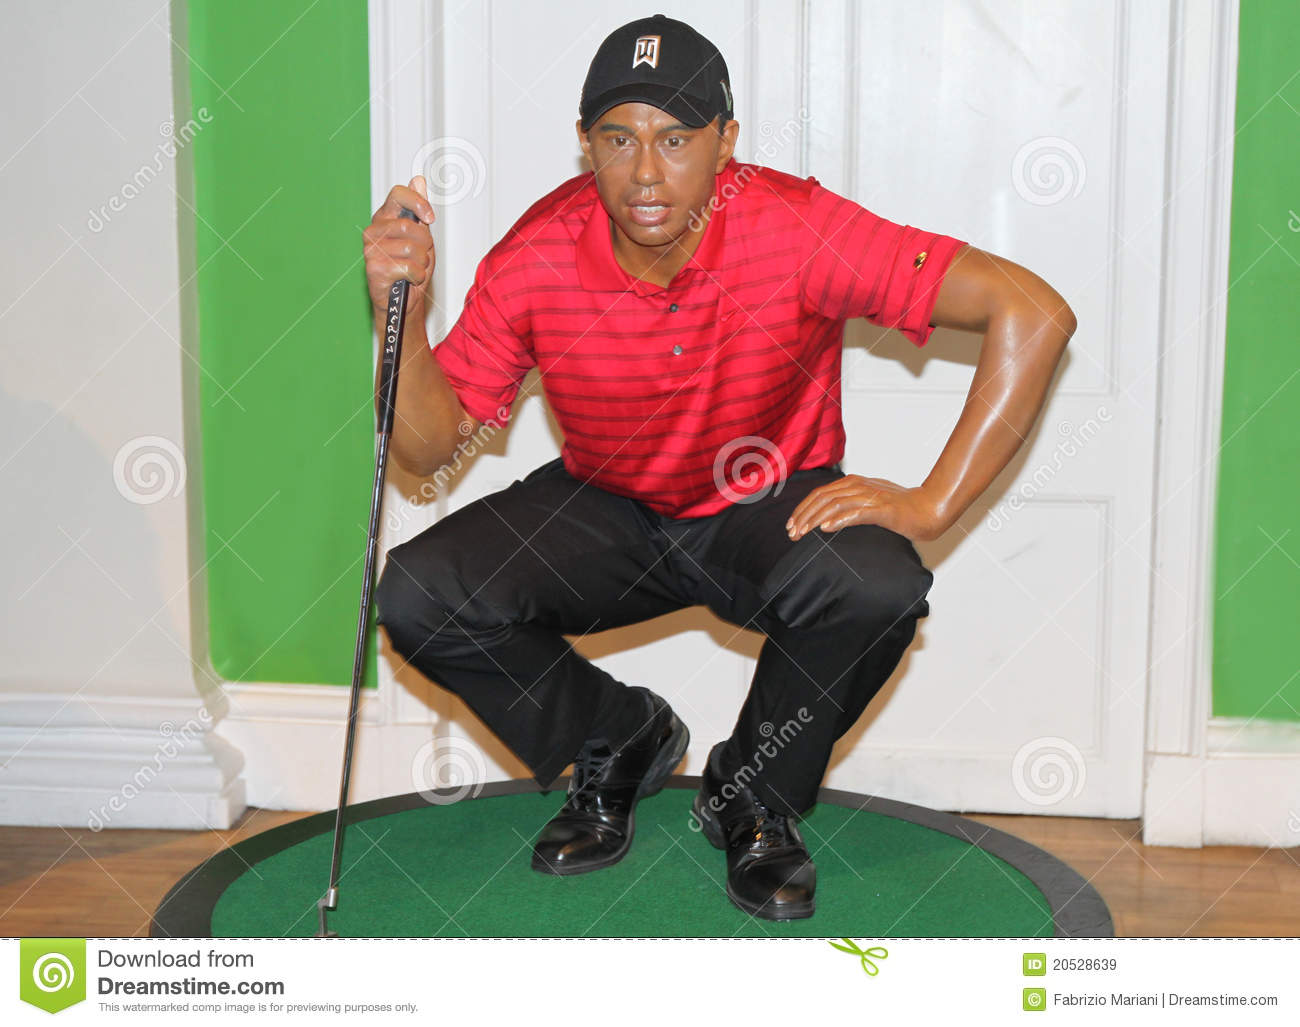 6d7ebe70f Tiger Woods At Madame Tussaud's Editorial Stock Image - Image of ...